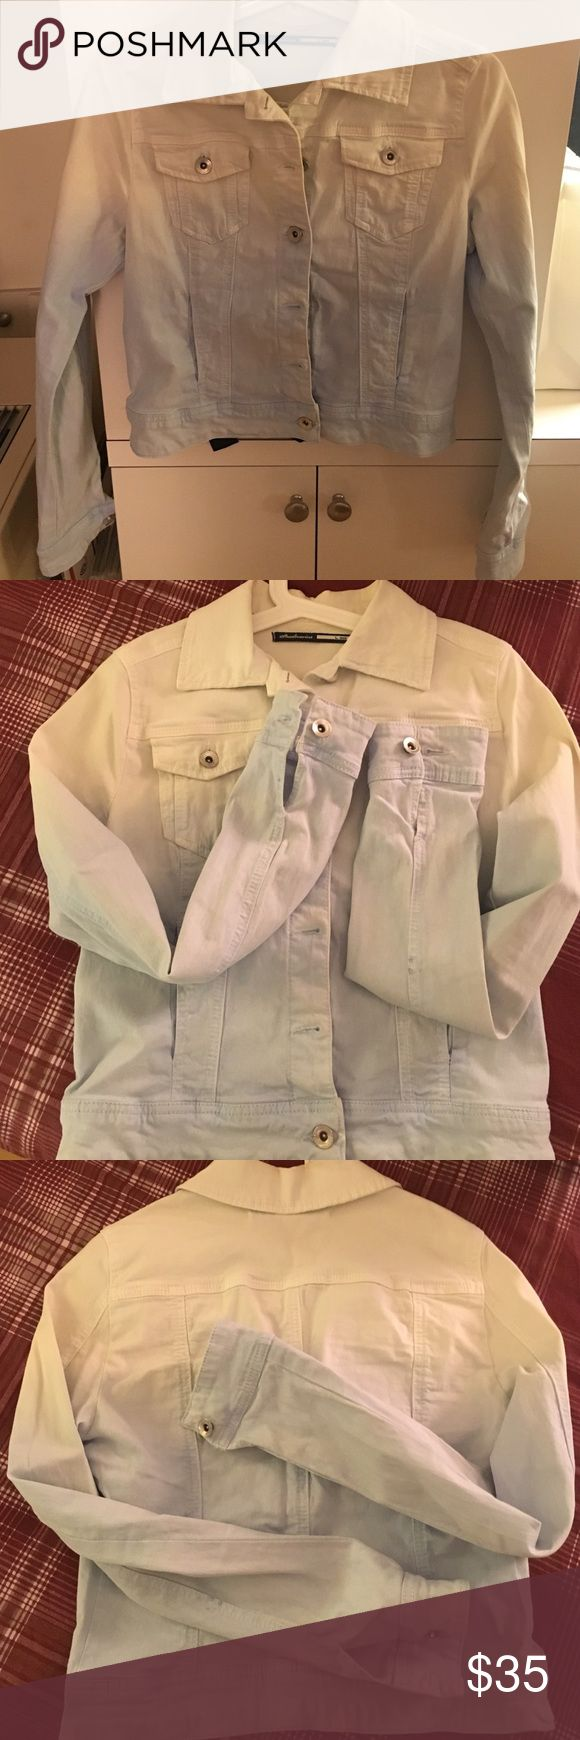 🆕Stradivarius light jacket Mixture of elastic and cotton fabric light jacket, the color is white to baby blue, Its more of a summer jacket but you may use it under winter coats, worn maybe once, size is Large but runs small like tight medium🙌🏻 tagged as zara as it belongs to Inditex company Zara Jackets & Coats